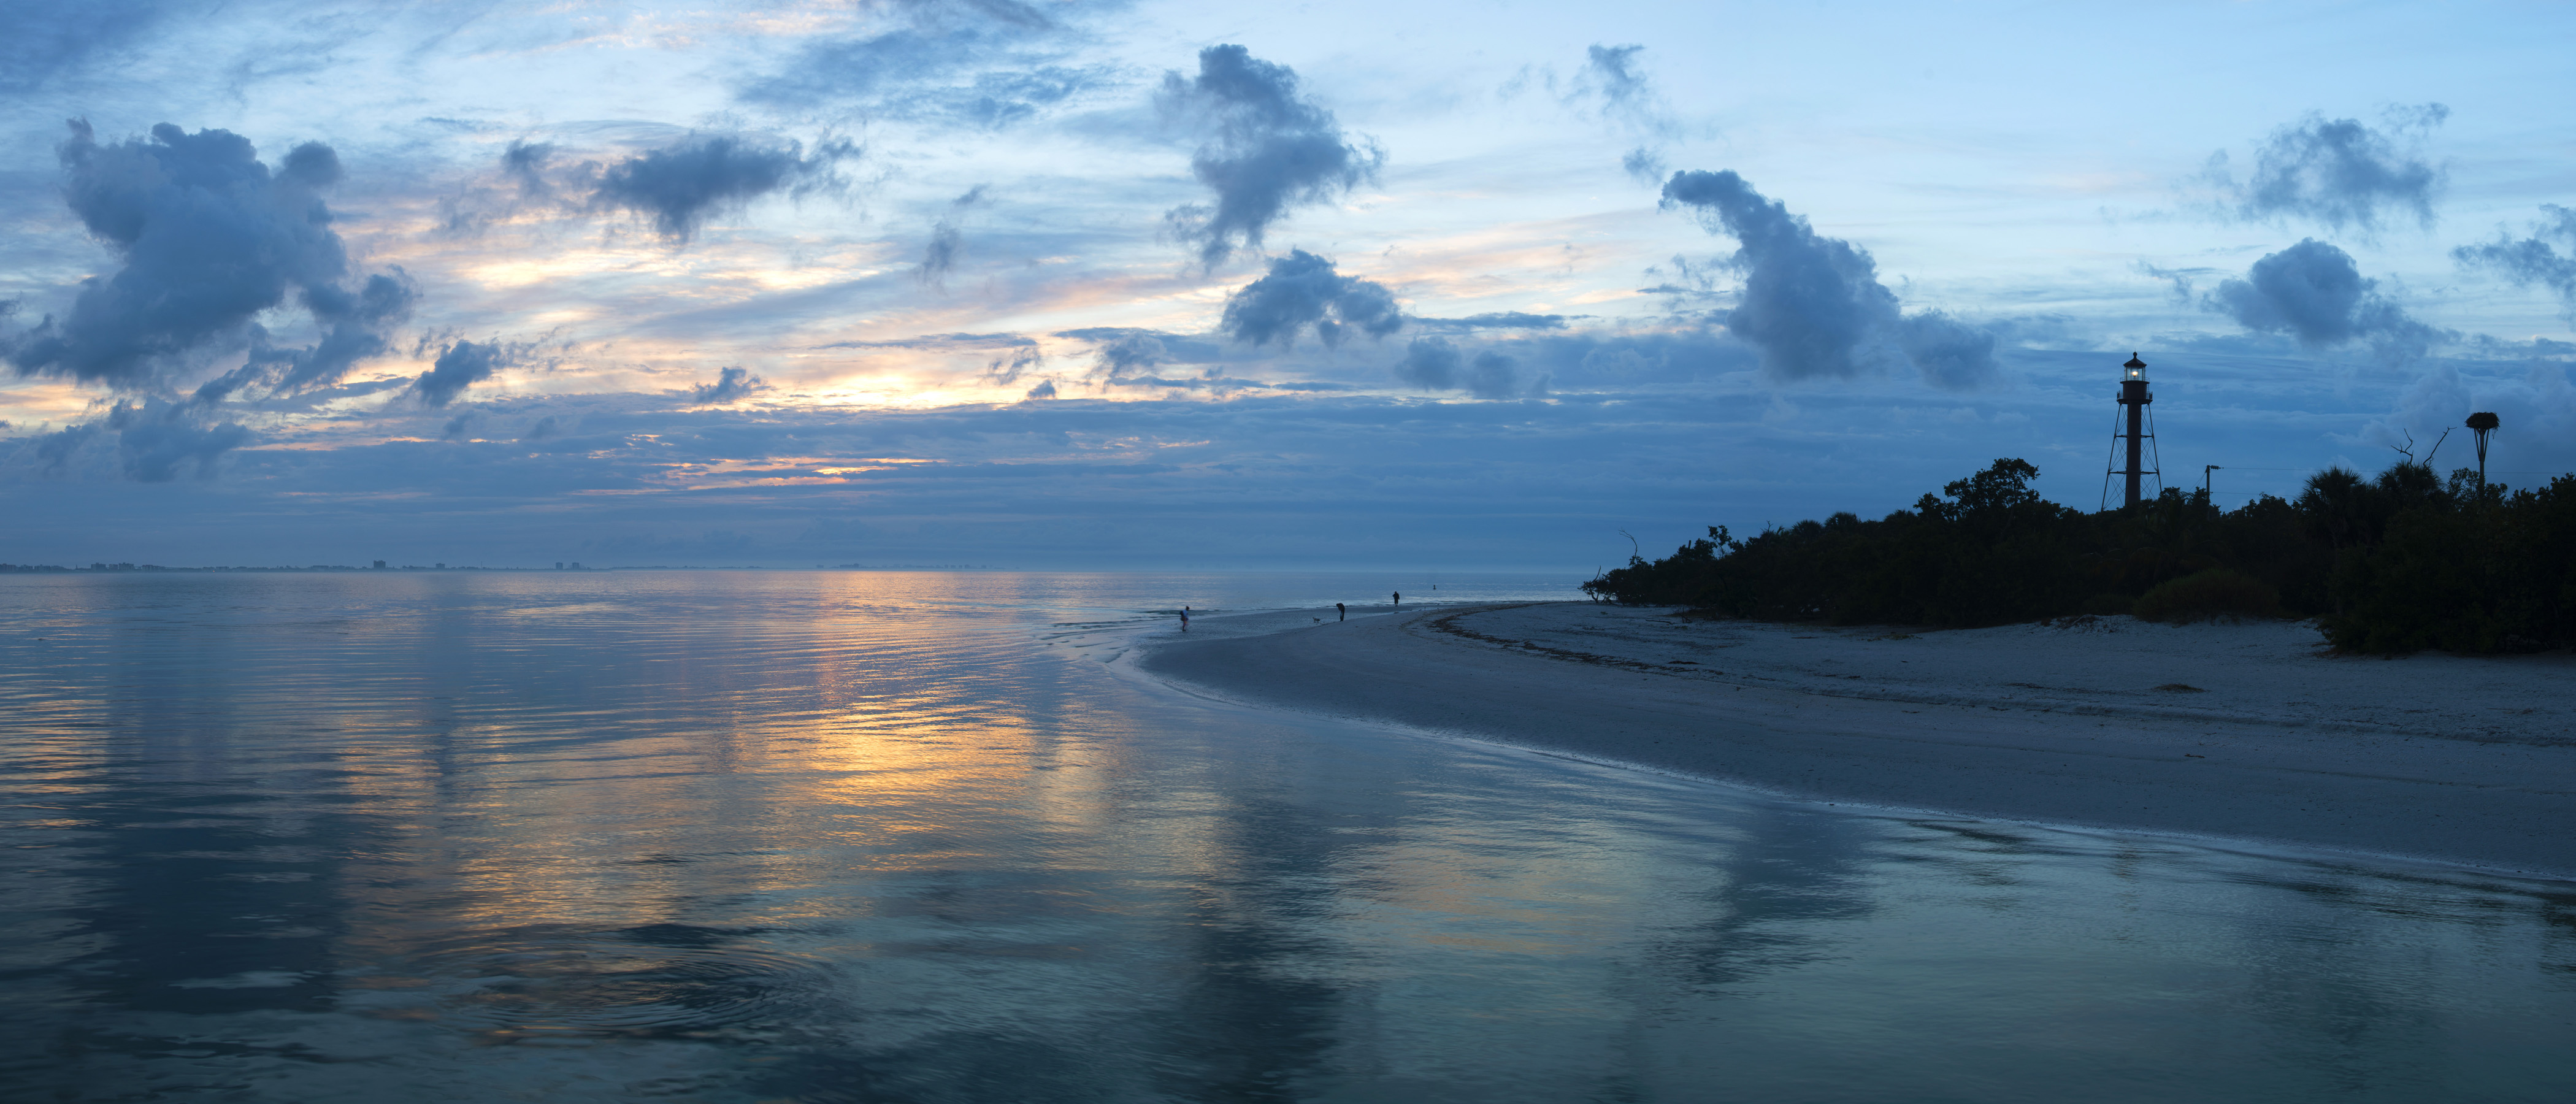 yellow and blue light during sunset over the ocean and Sanibel Island in Florida. The water is calm and serene.